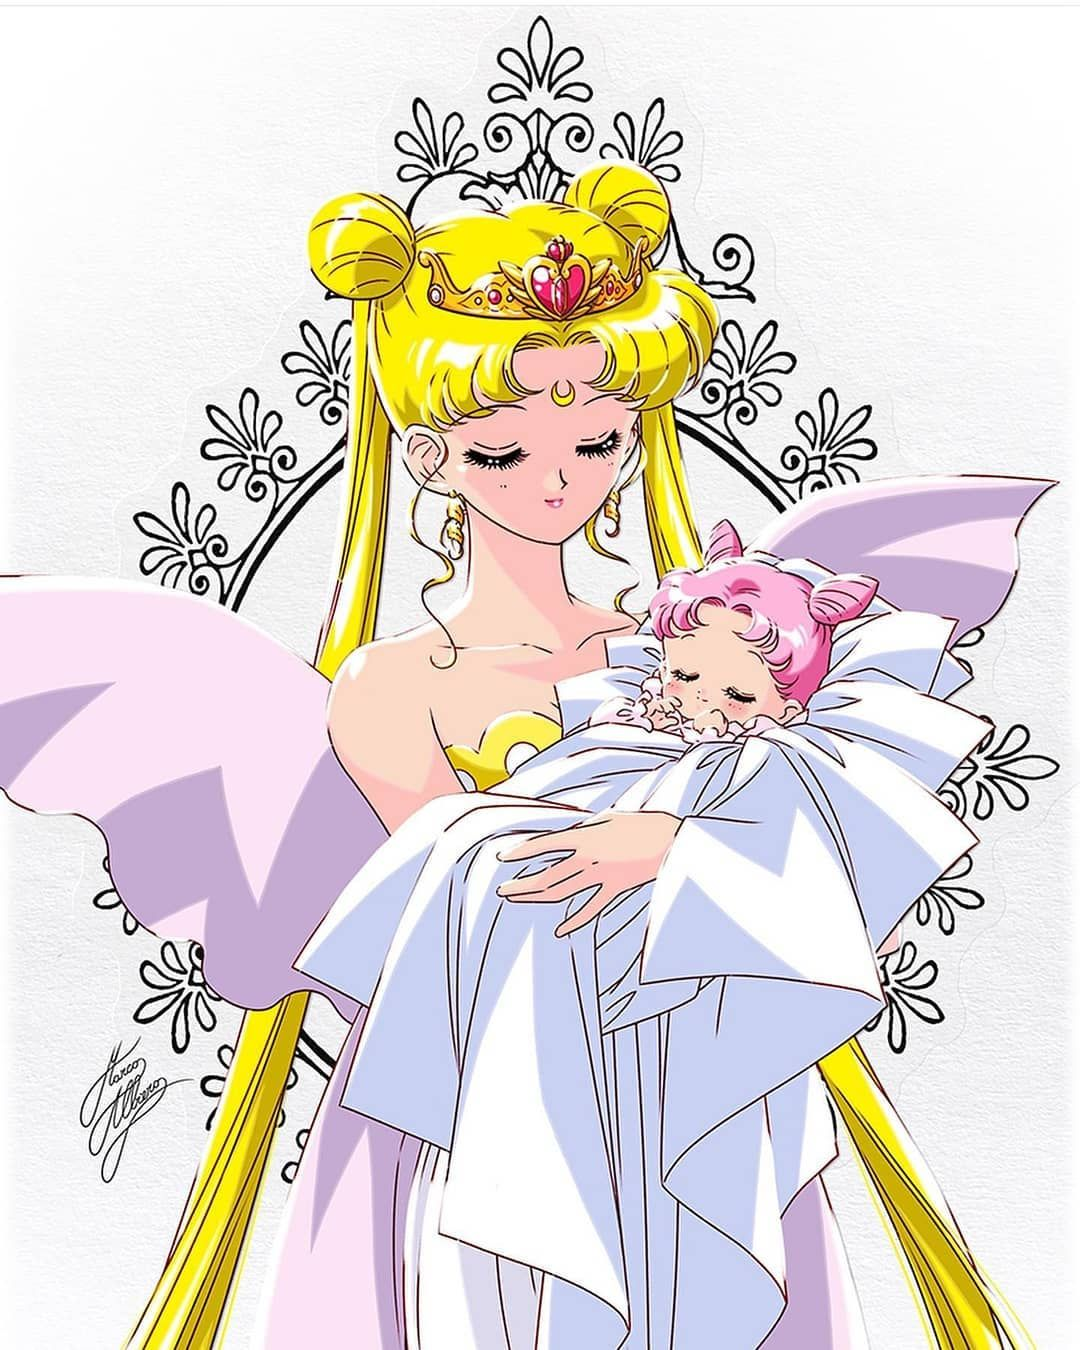 Usagi Tsukino On Instagram Such Beautiful Artwork Of The Queen And Baby Chibiusa Done By Mar Sailor Chibi Moon Sailor Mini Moon Sailor Moon Stars